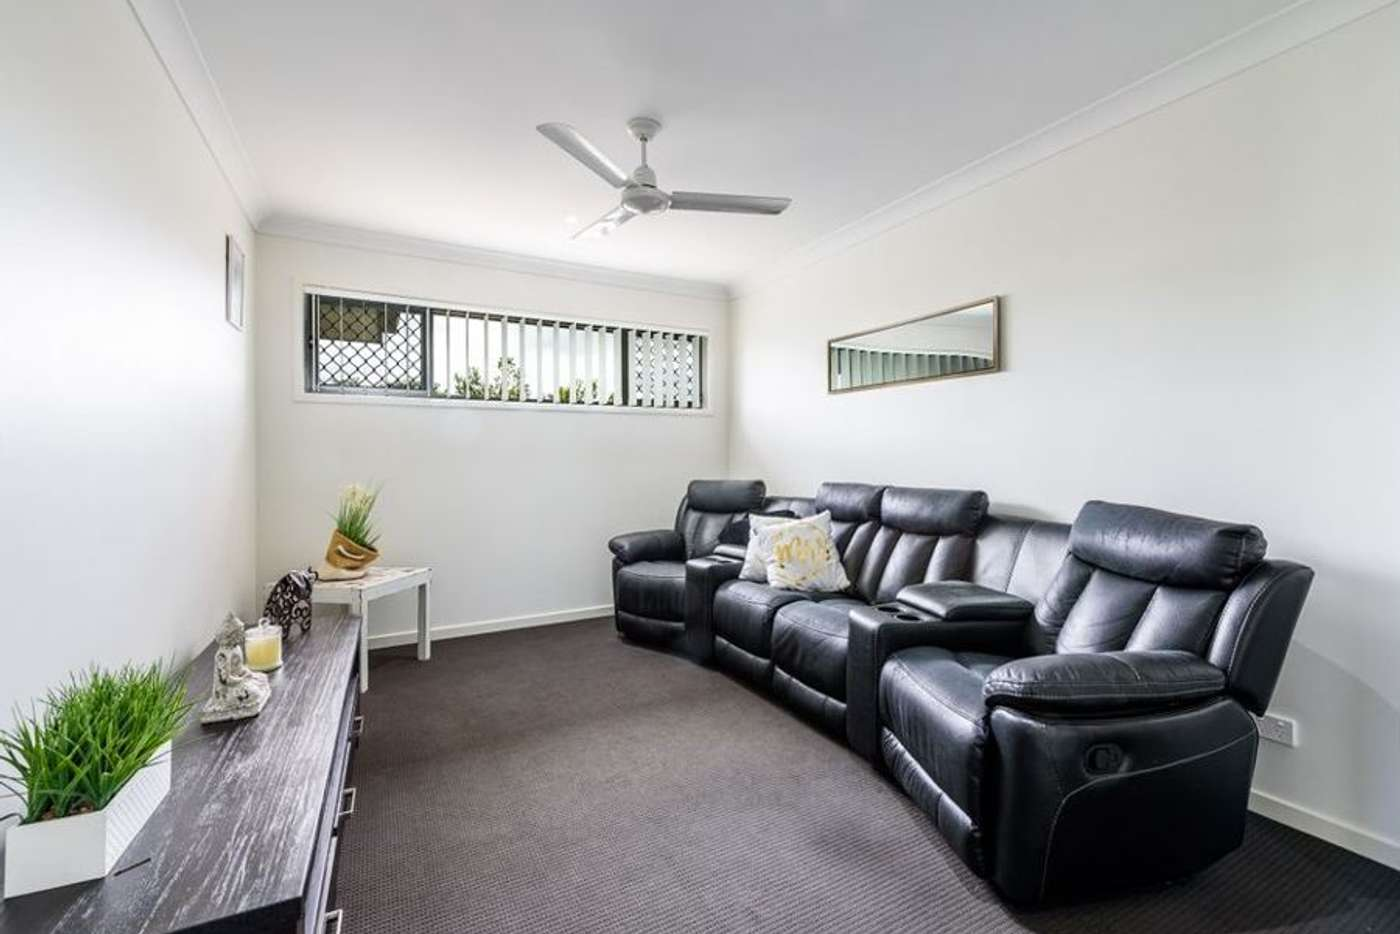 Seventh view of Homely house listing, 20 Azure Way, Coomera QLD 4209